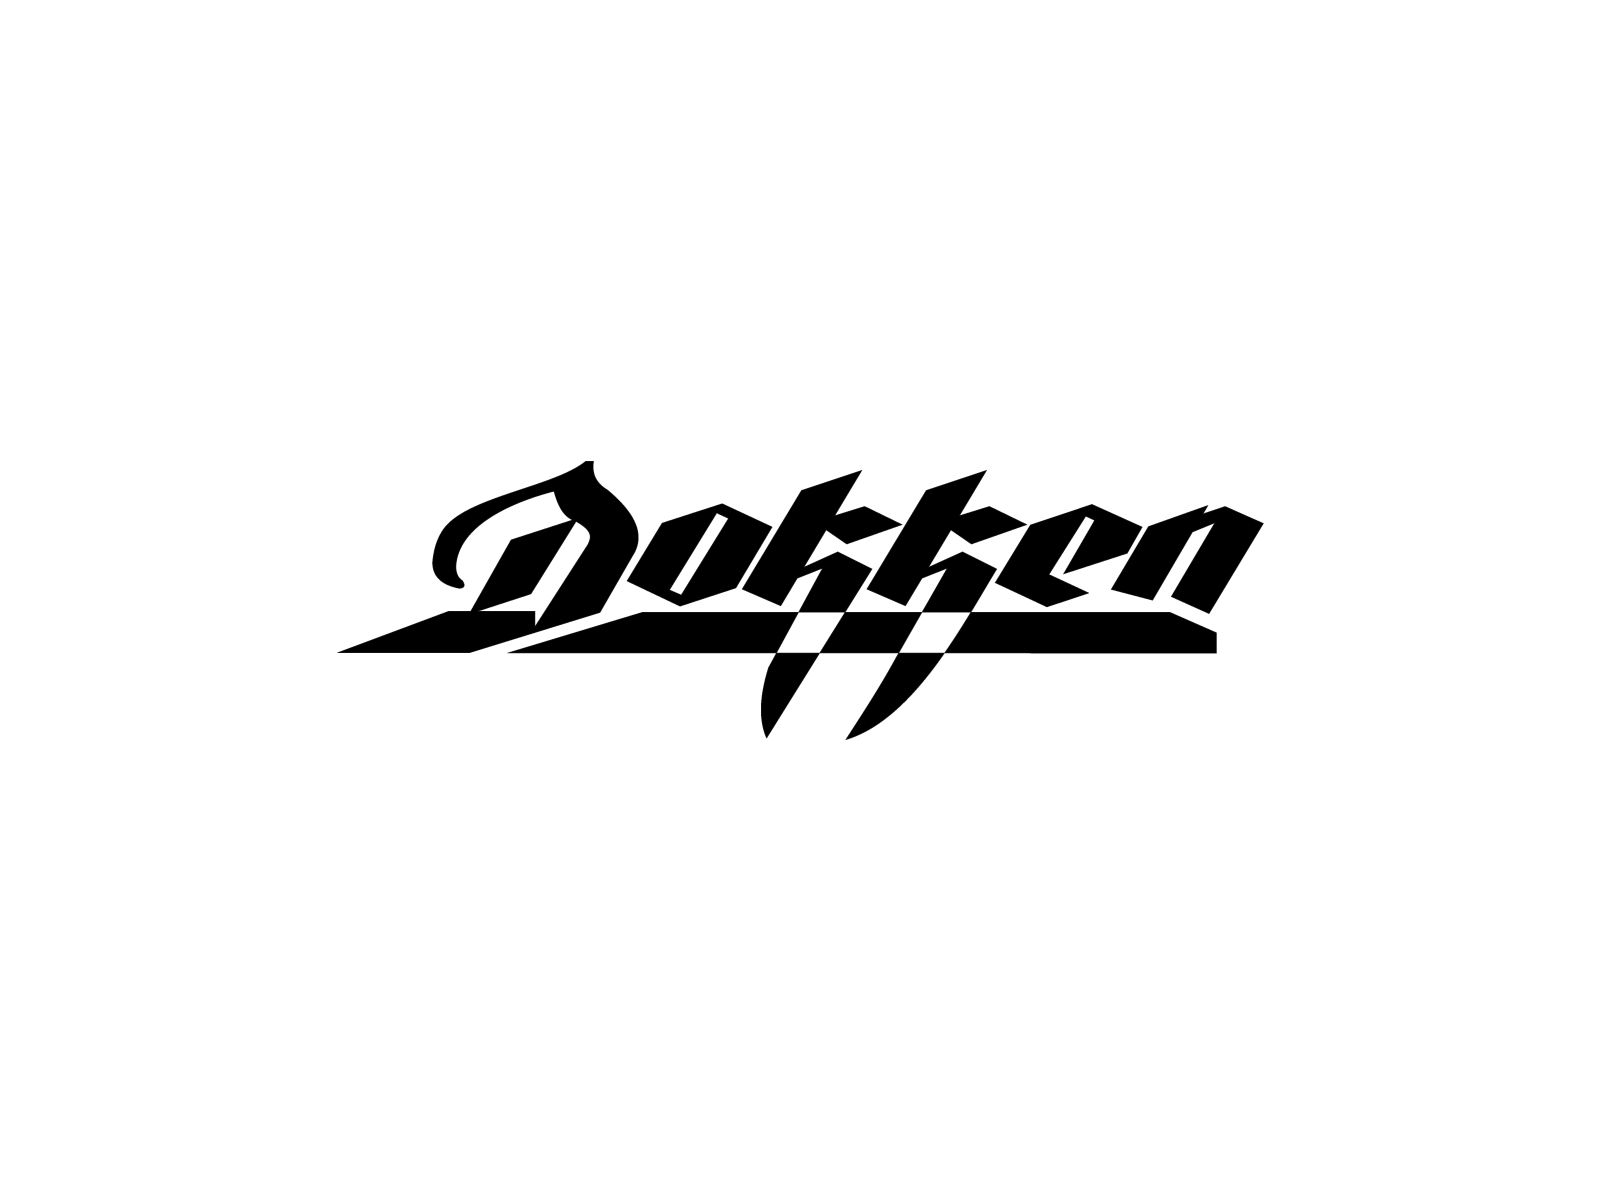 Dokken band logo.